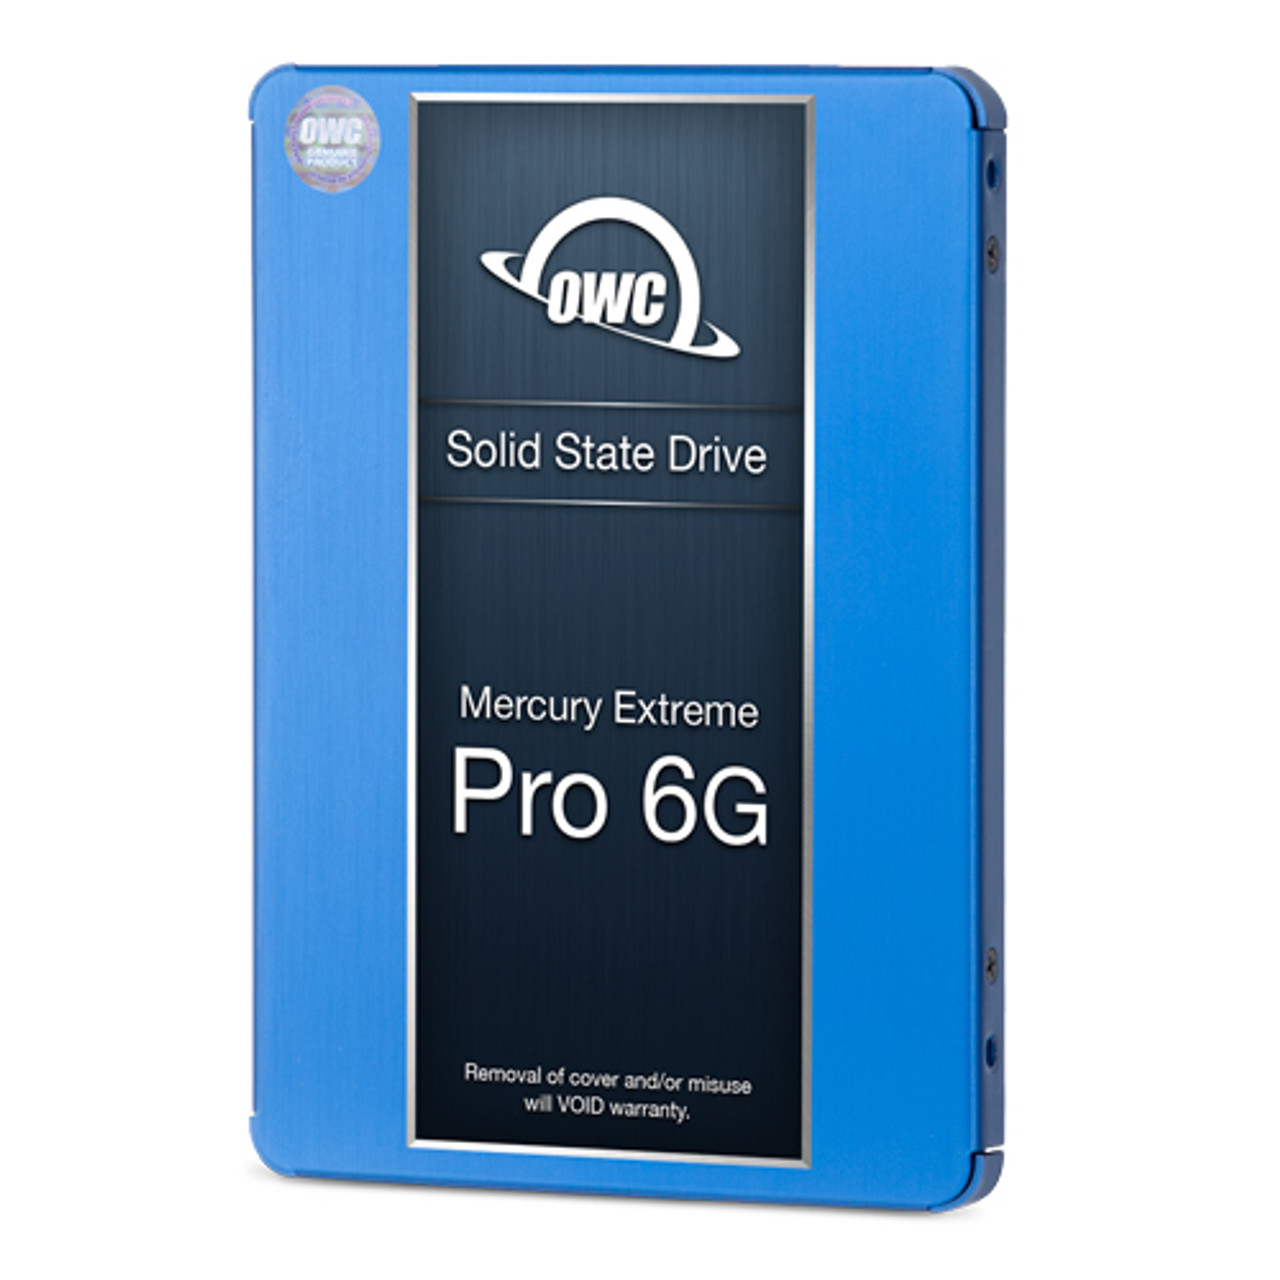 1TB OWC Mercury Extreme 6G SSD - SSD Bay Add-In Kit for 2011 27-inch iMacs